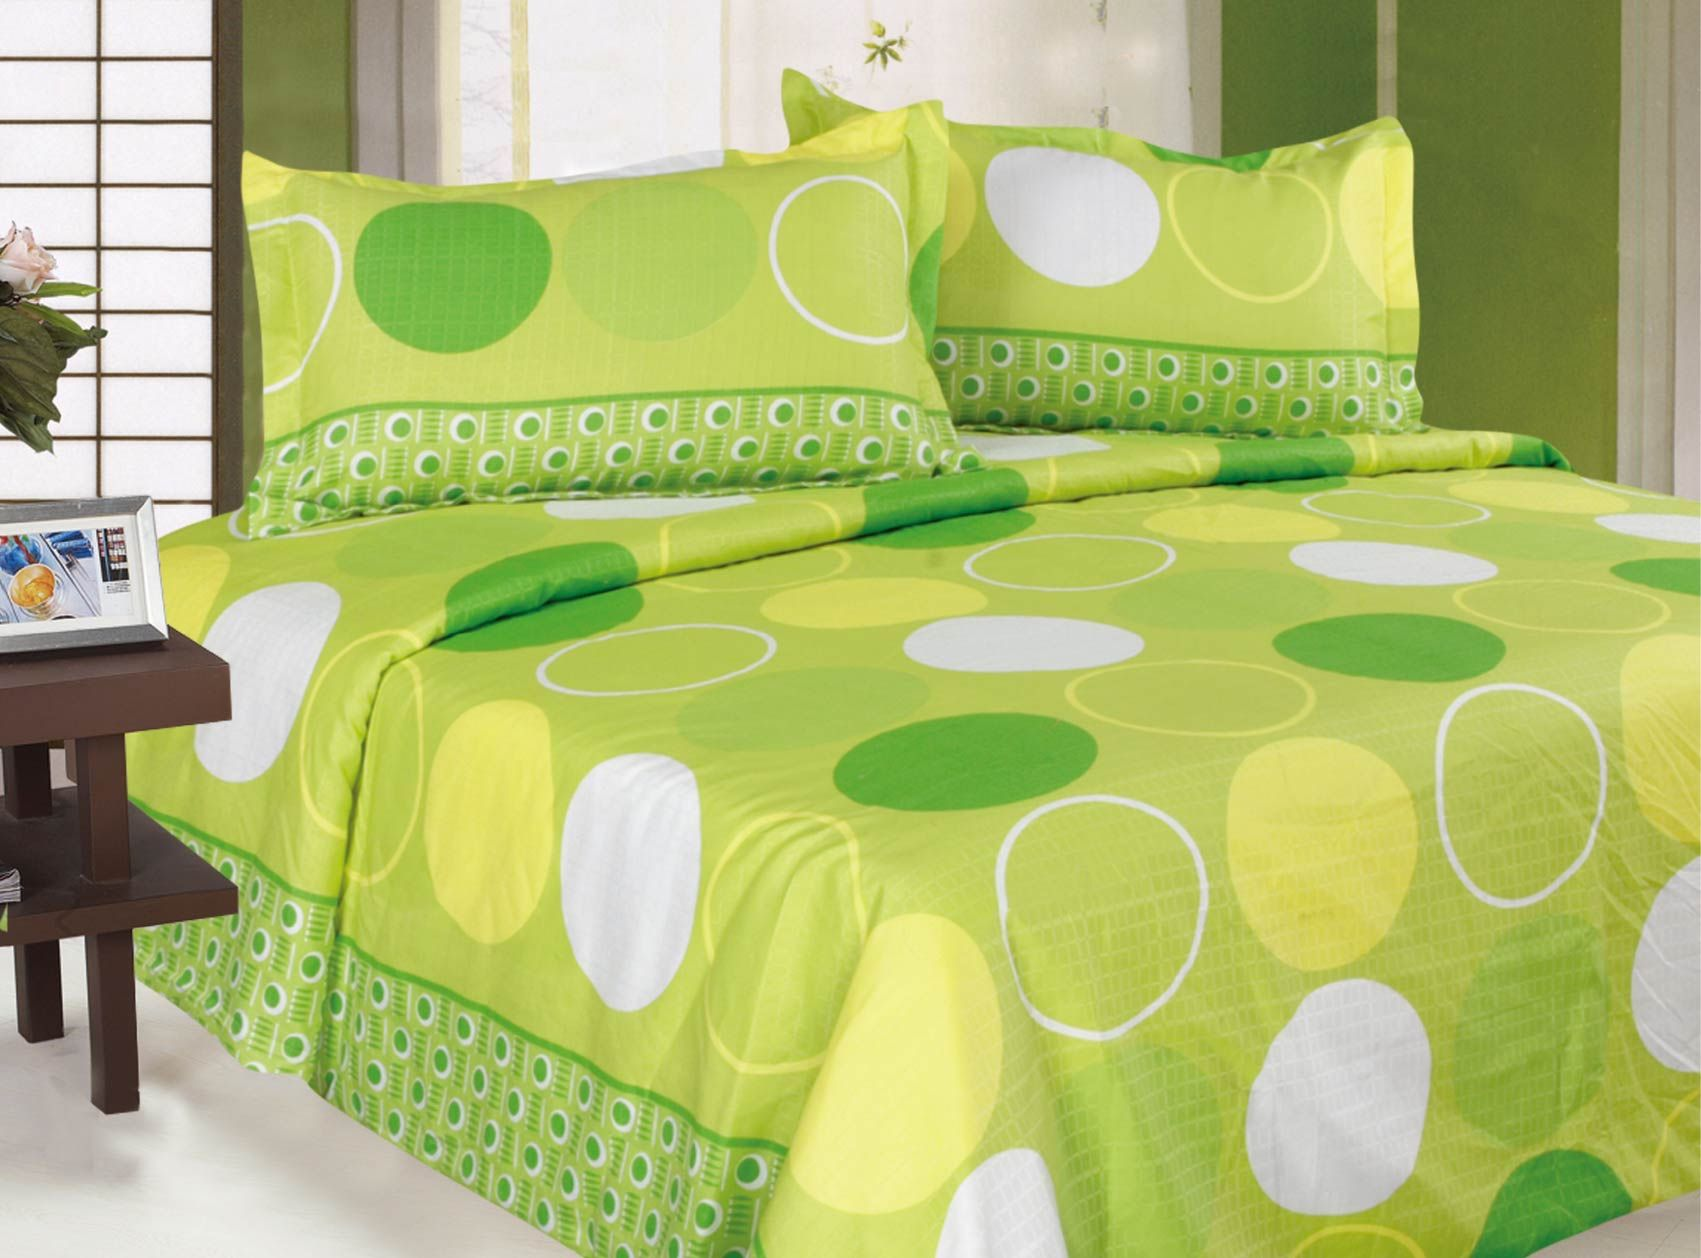 from which is the best option to buy bed sheet bed sheet